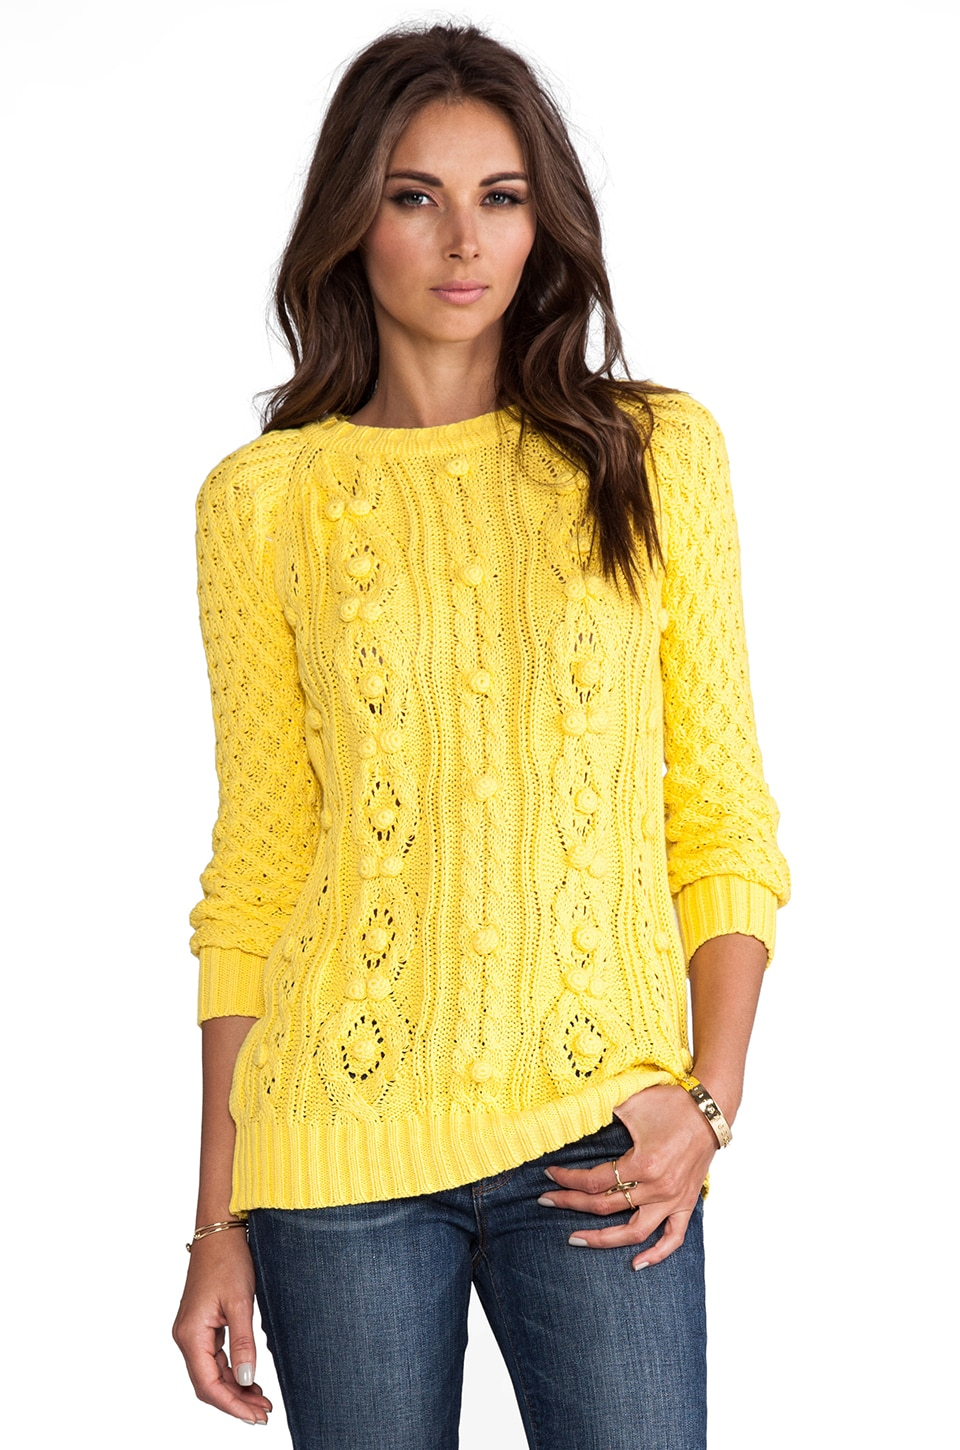 Ladakh Bubble Knit Sweater in Citrus